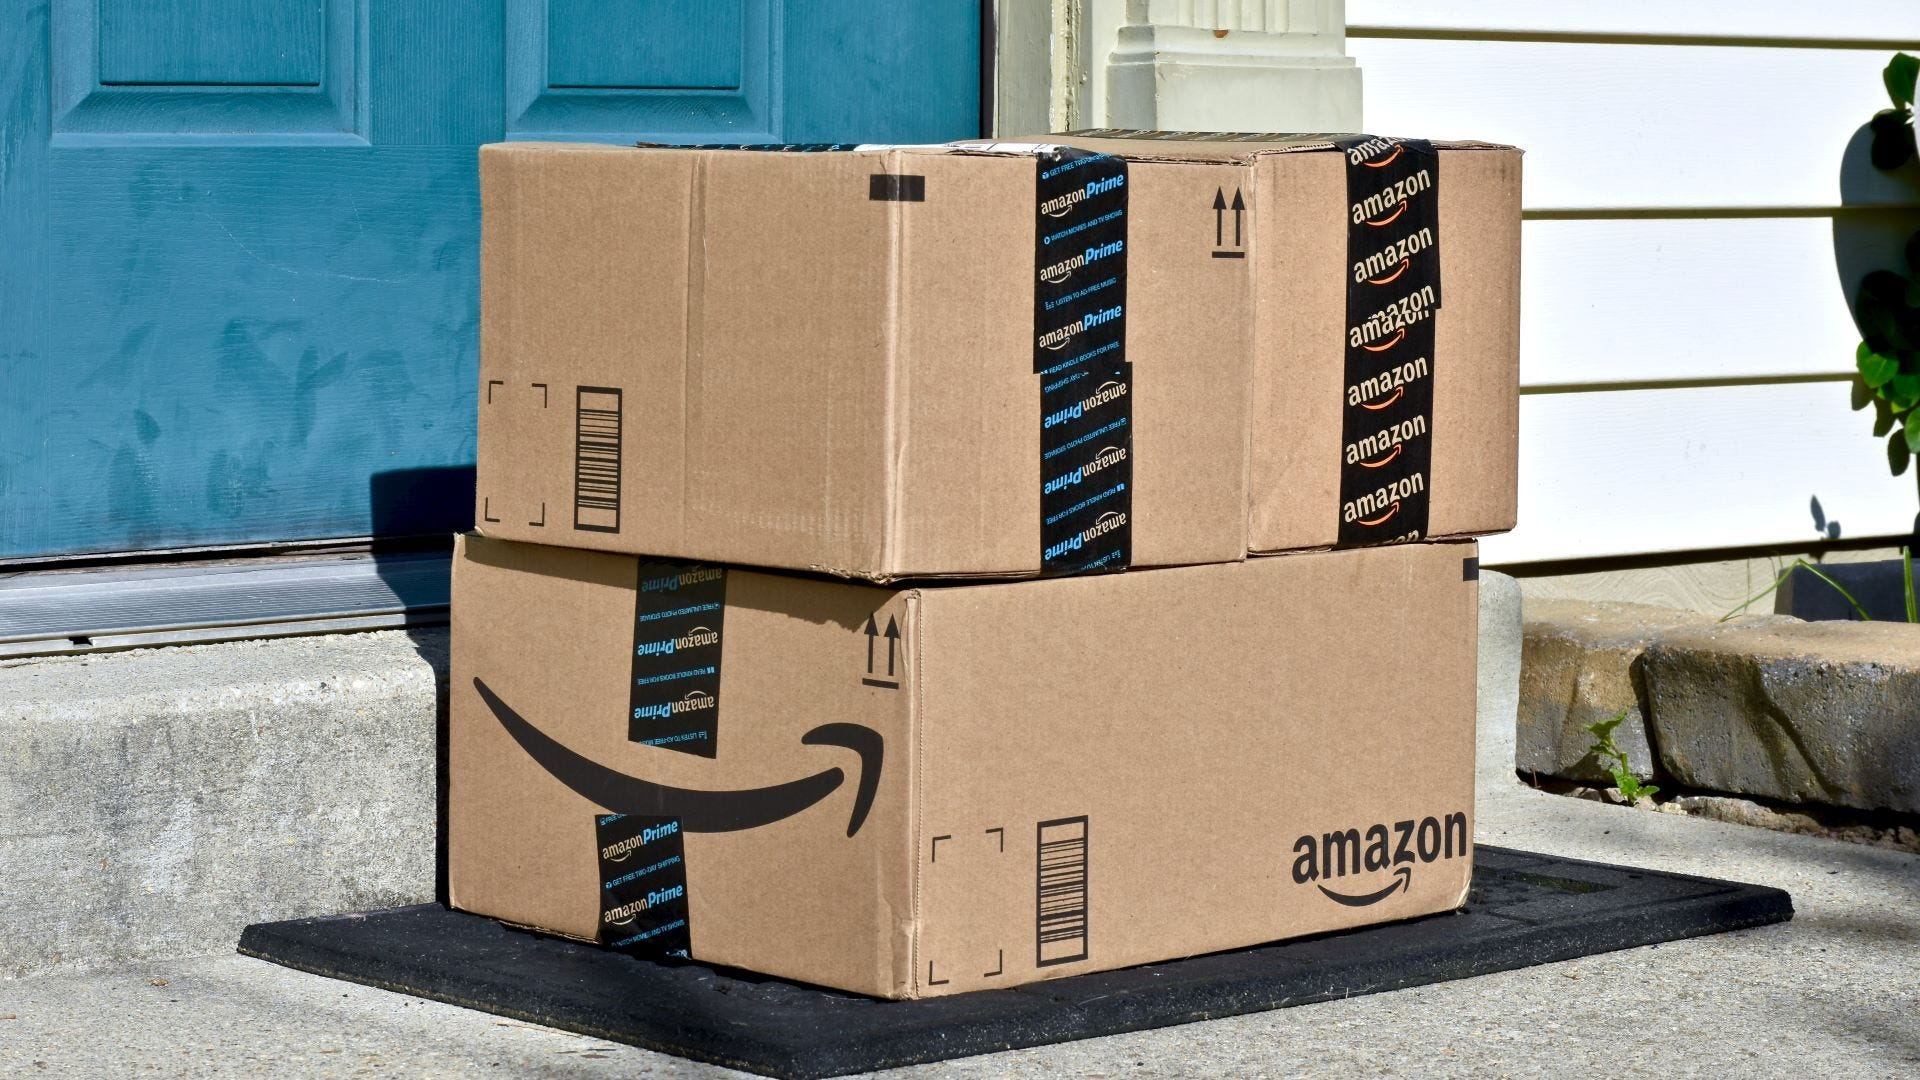 Two Amazon boxes on a porch.